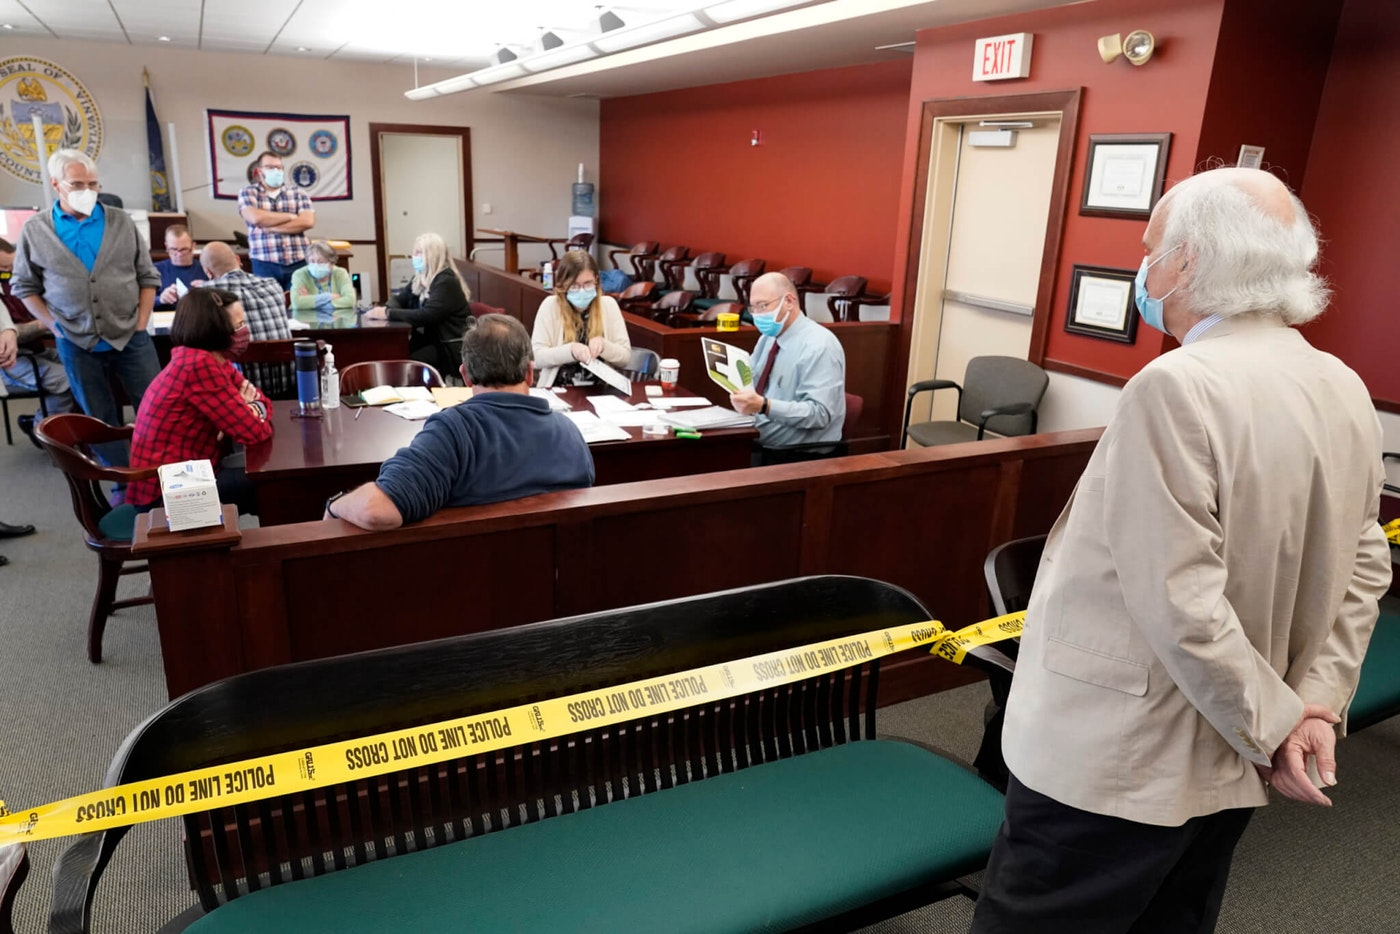 In this Nov. 6, 2020, file photo, an observer watches as Luzerne County workers canvas ballots that arrived between the closure of the polls and 5 p.m. Nov. 6, as vote counting in the general election continues in Wilkes-Barre, Pa. (AP Photo/Mary Altaffer, File)